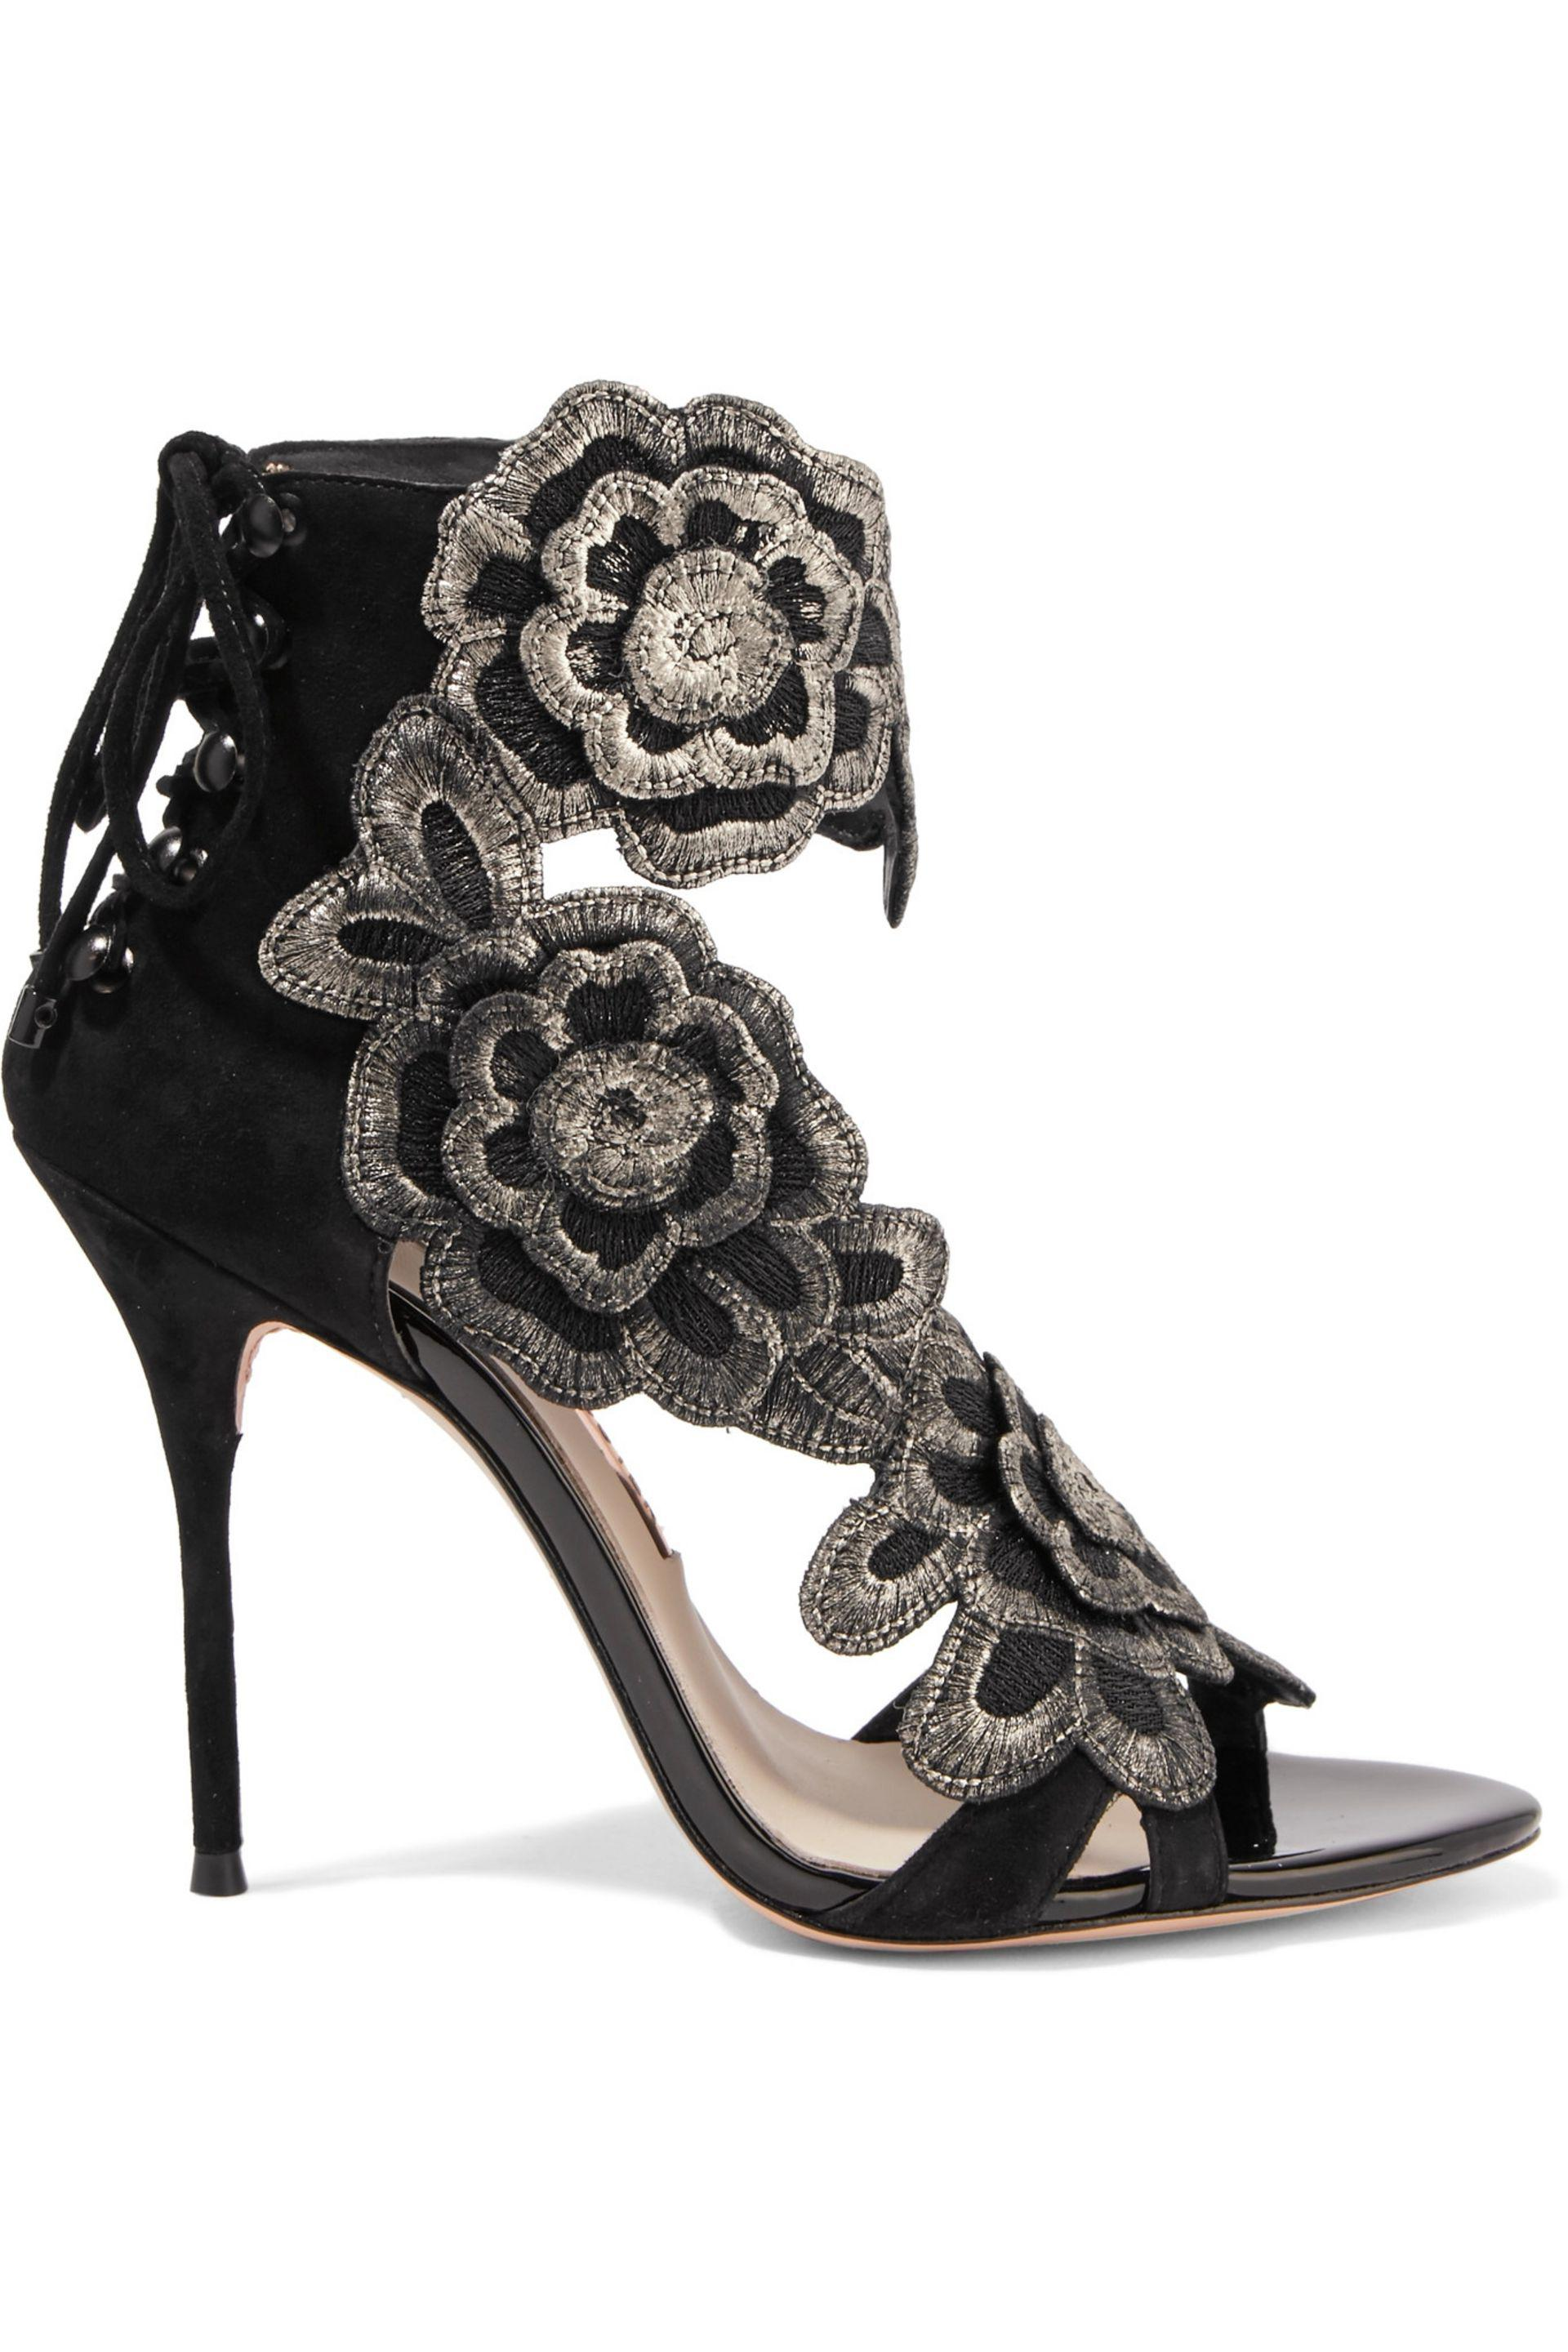 Sophia Webster. Women's Black Winona Embroidered Suede Sandals